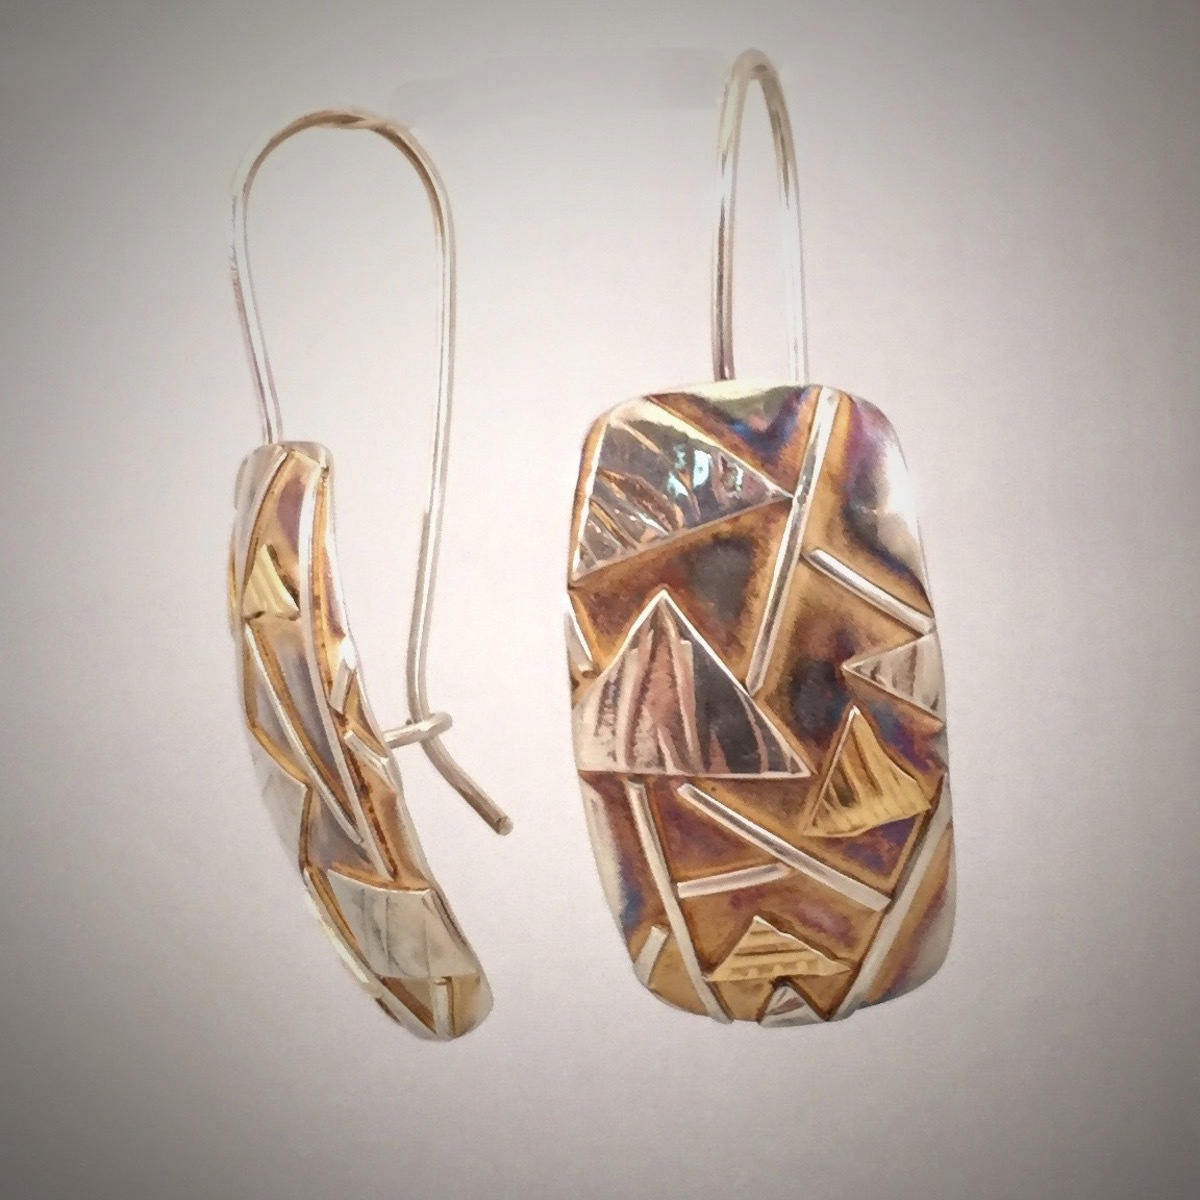 Zentangle Metal Gold & Silver Rectangle Clasp Earrings (large view)